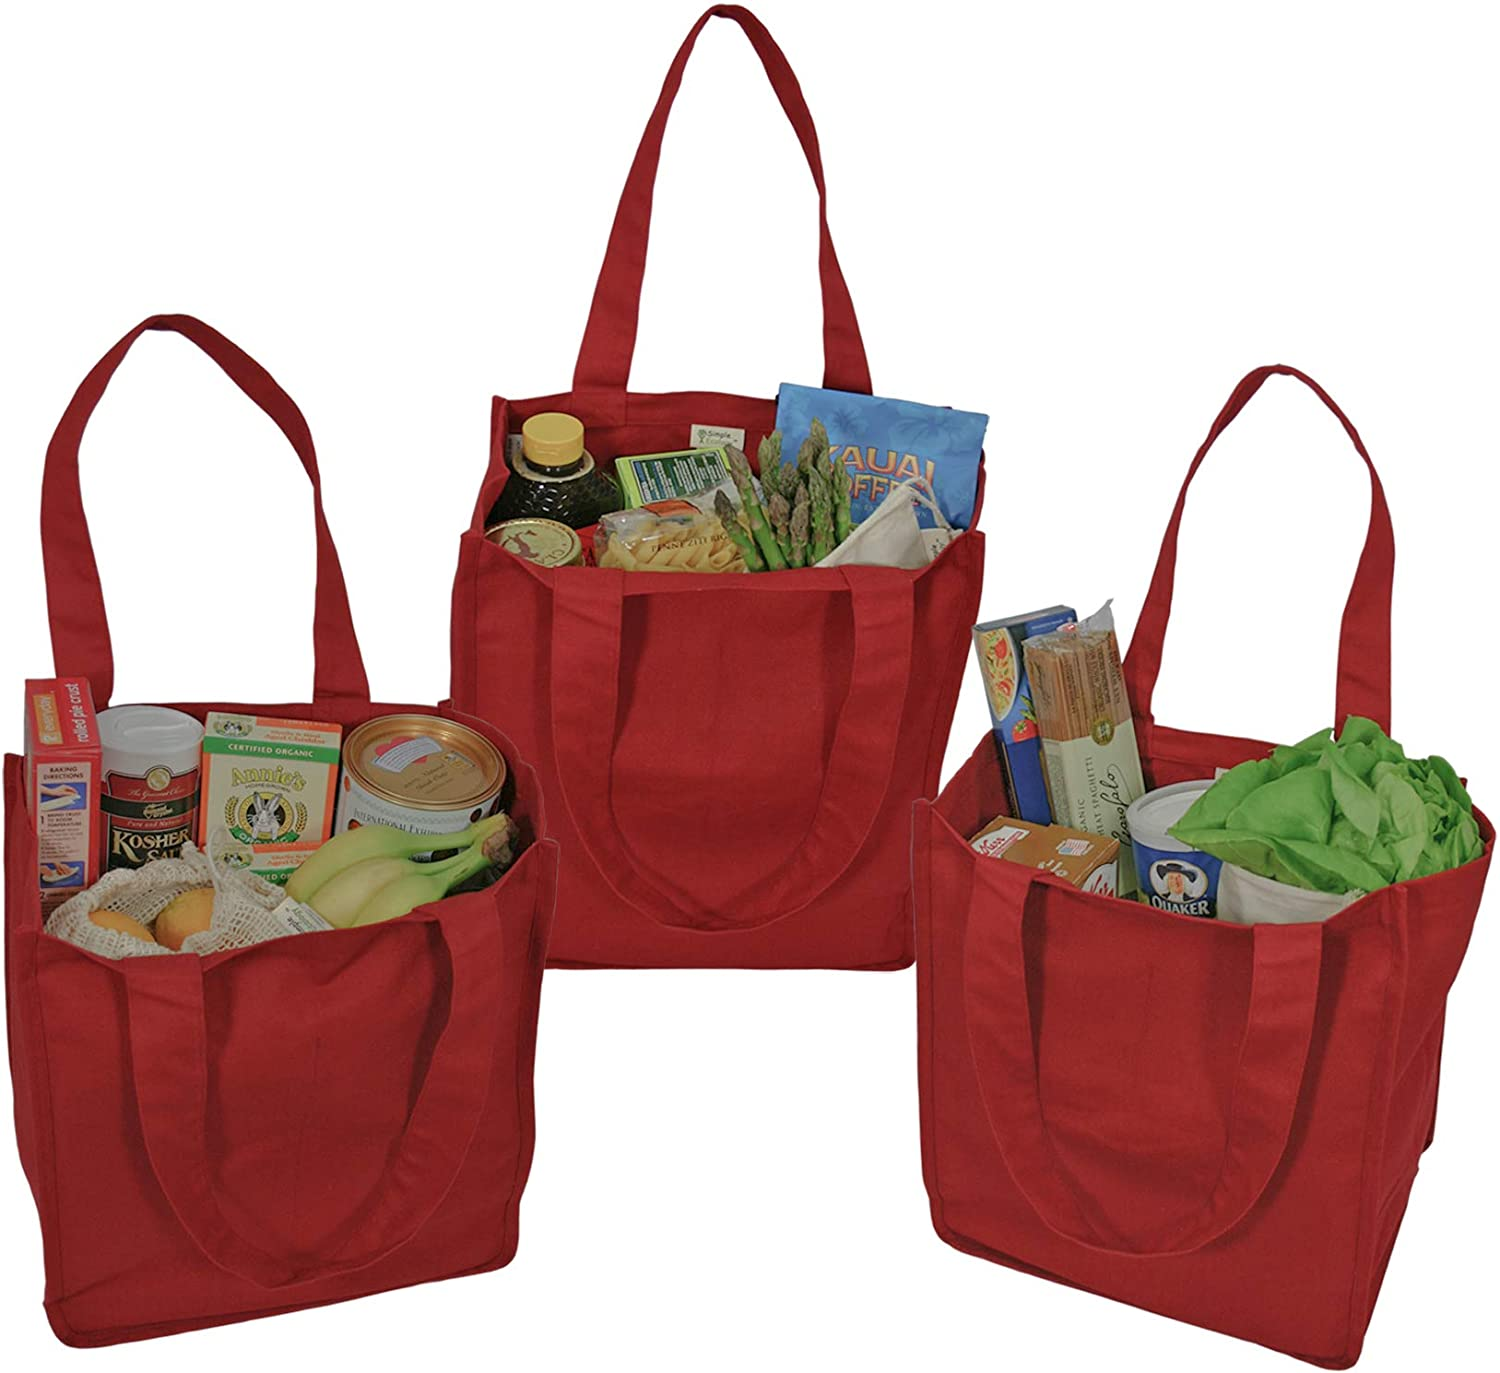 Simple Ecology Organic Cotton Deluxe Reusable Grocery Shopping Bag with Bottle Sleeves - Red 3 Pack (heavy duty, washable, durable handles, foldable, craft & gift bag, 6 bottle wine bag carrier)